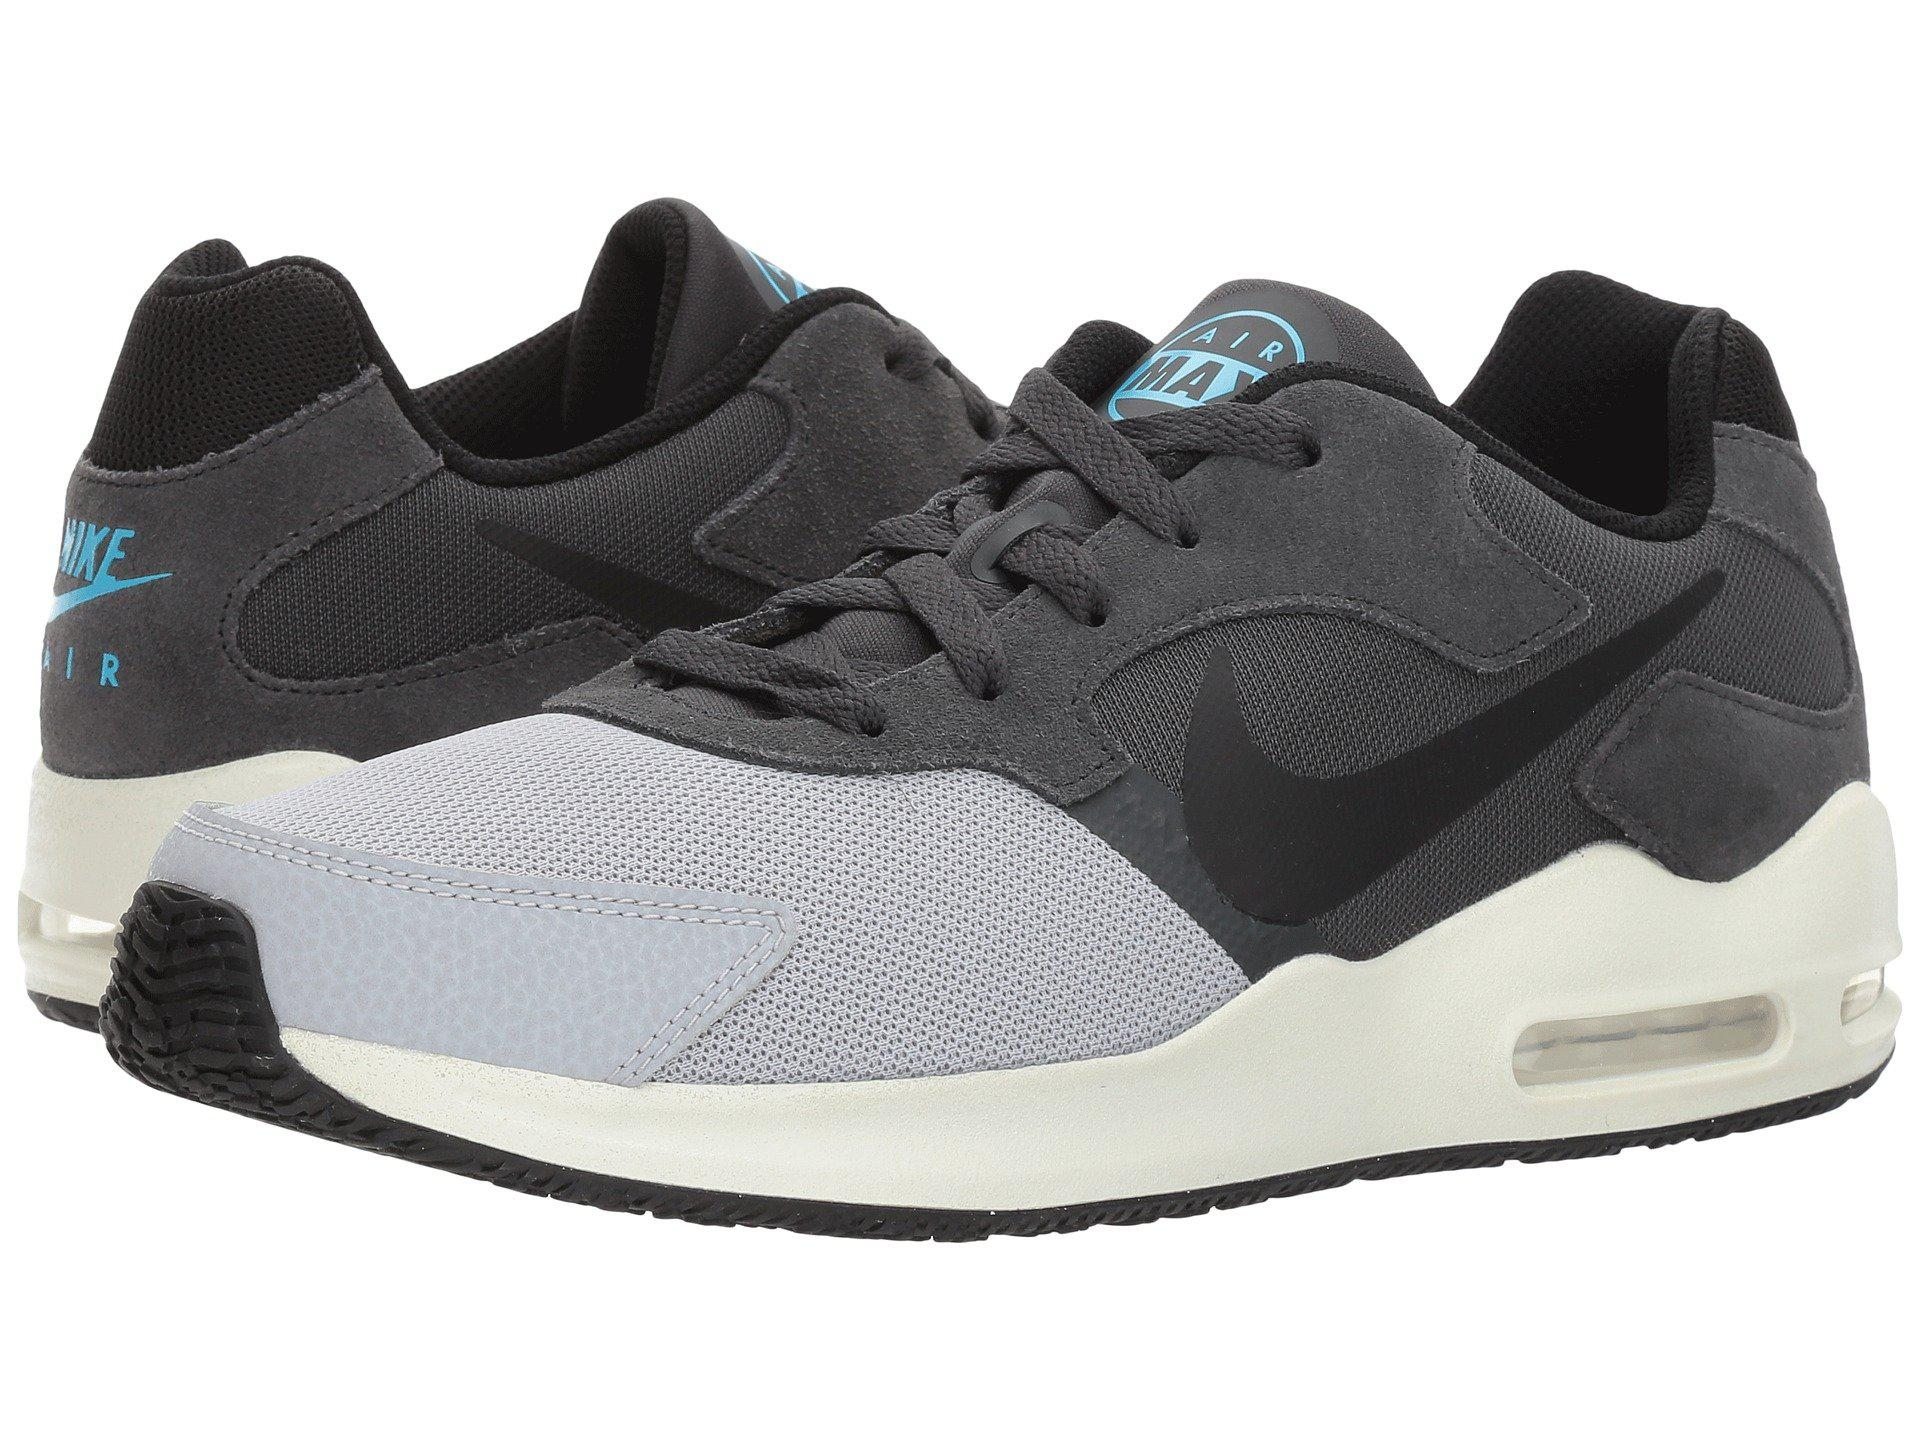 52bf4af2e67 Lyst - Nike Air Max Guile in Gray for Men